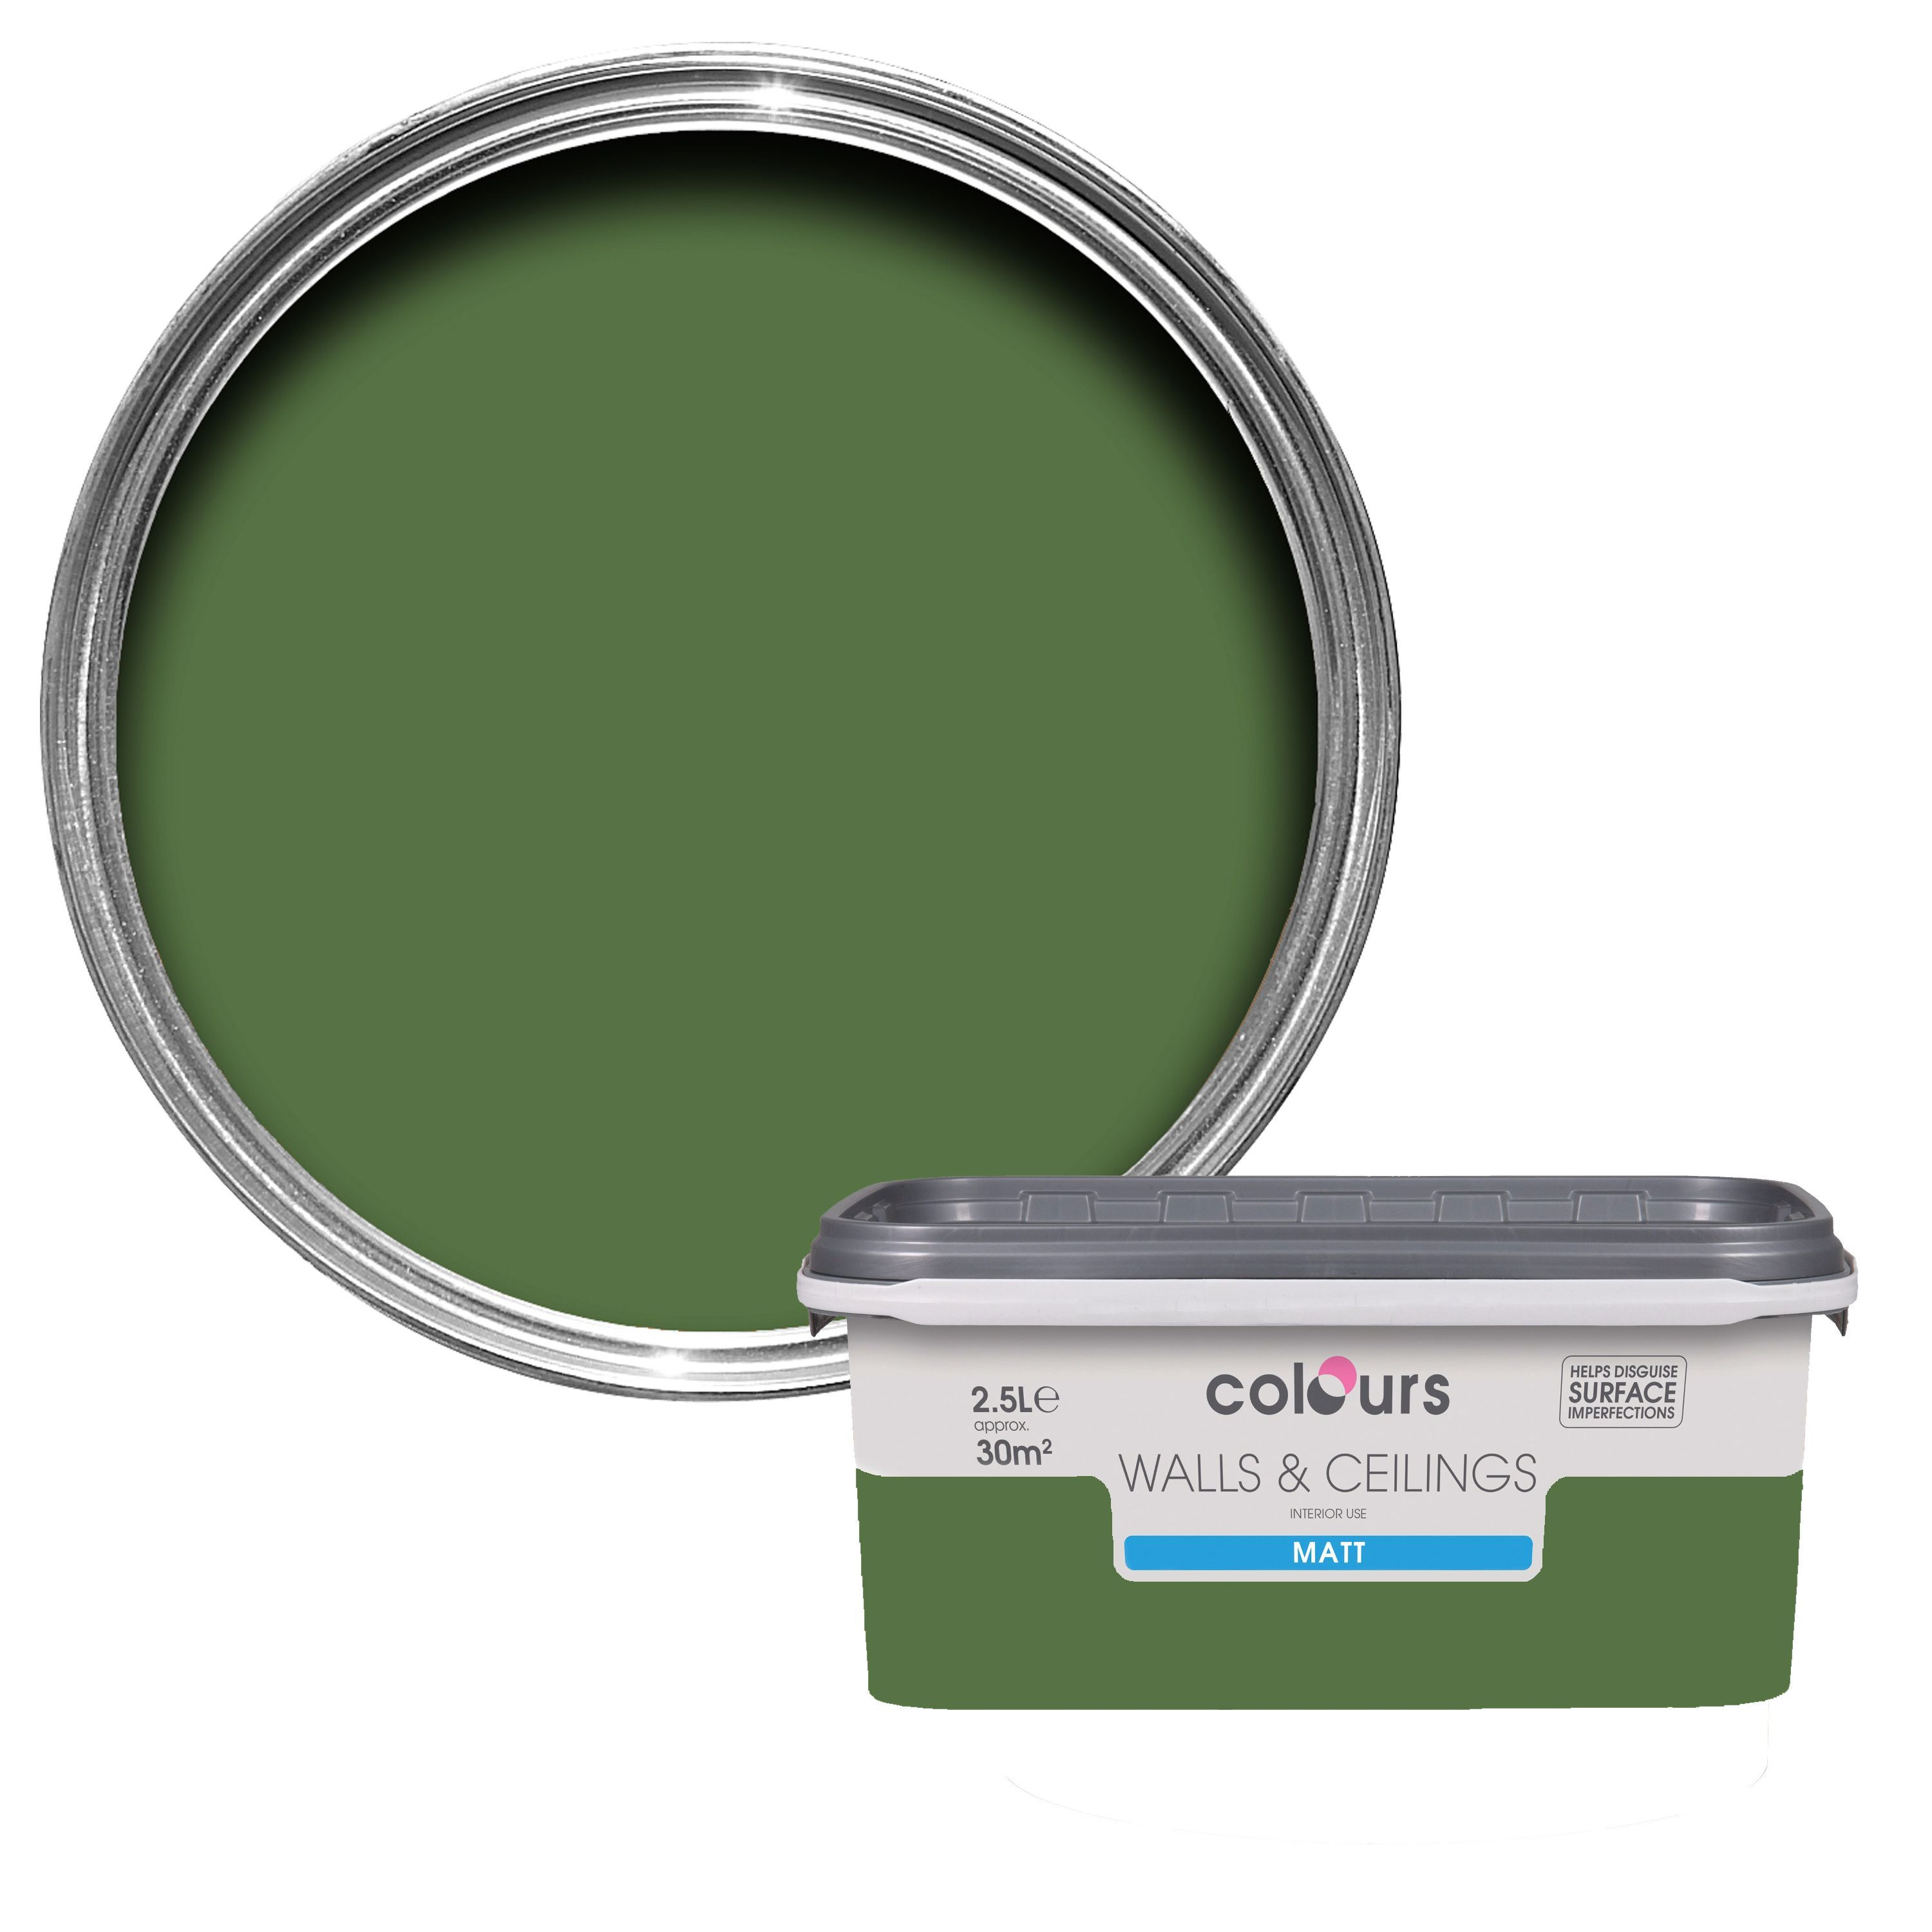 Colours Standard Sherwood Matt Emulsion Paint 2 5l B Q For All Your Home And Garden Supplies And Blue Bathroom Paint Blue Bathroom Kitchen And Bathroom Paint